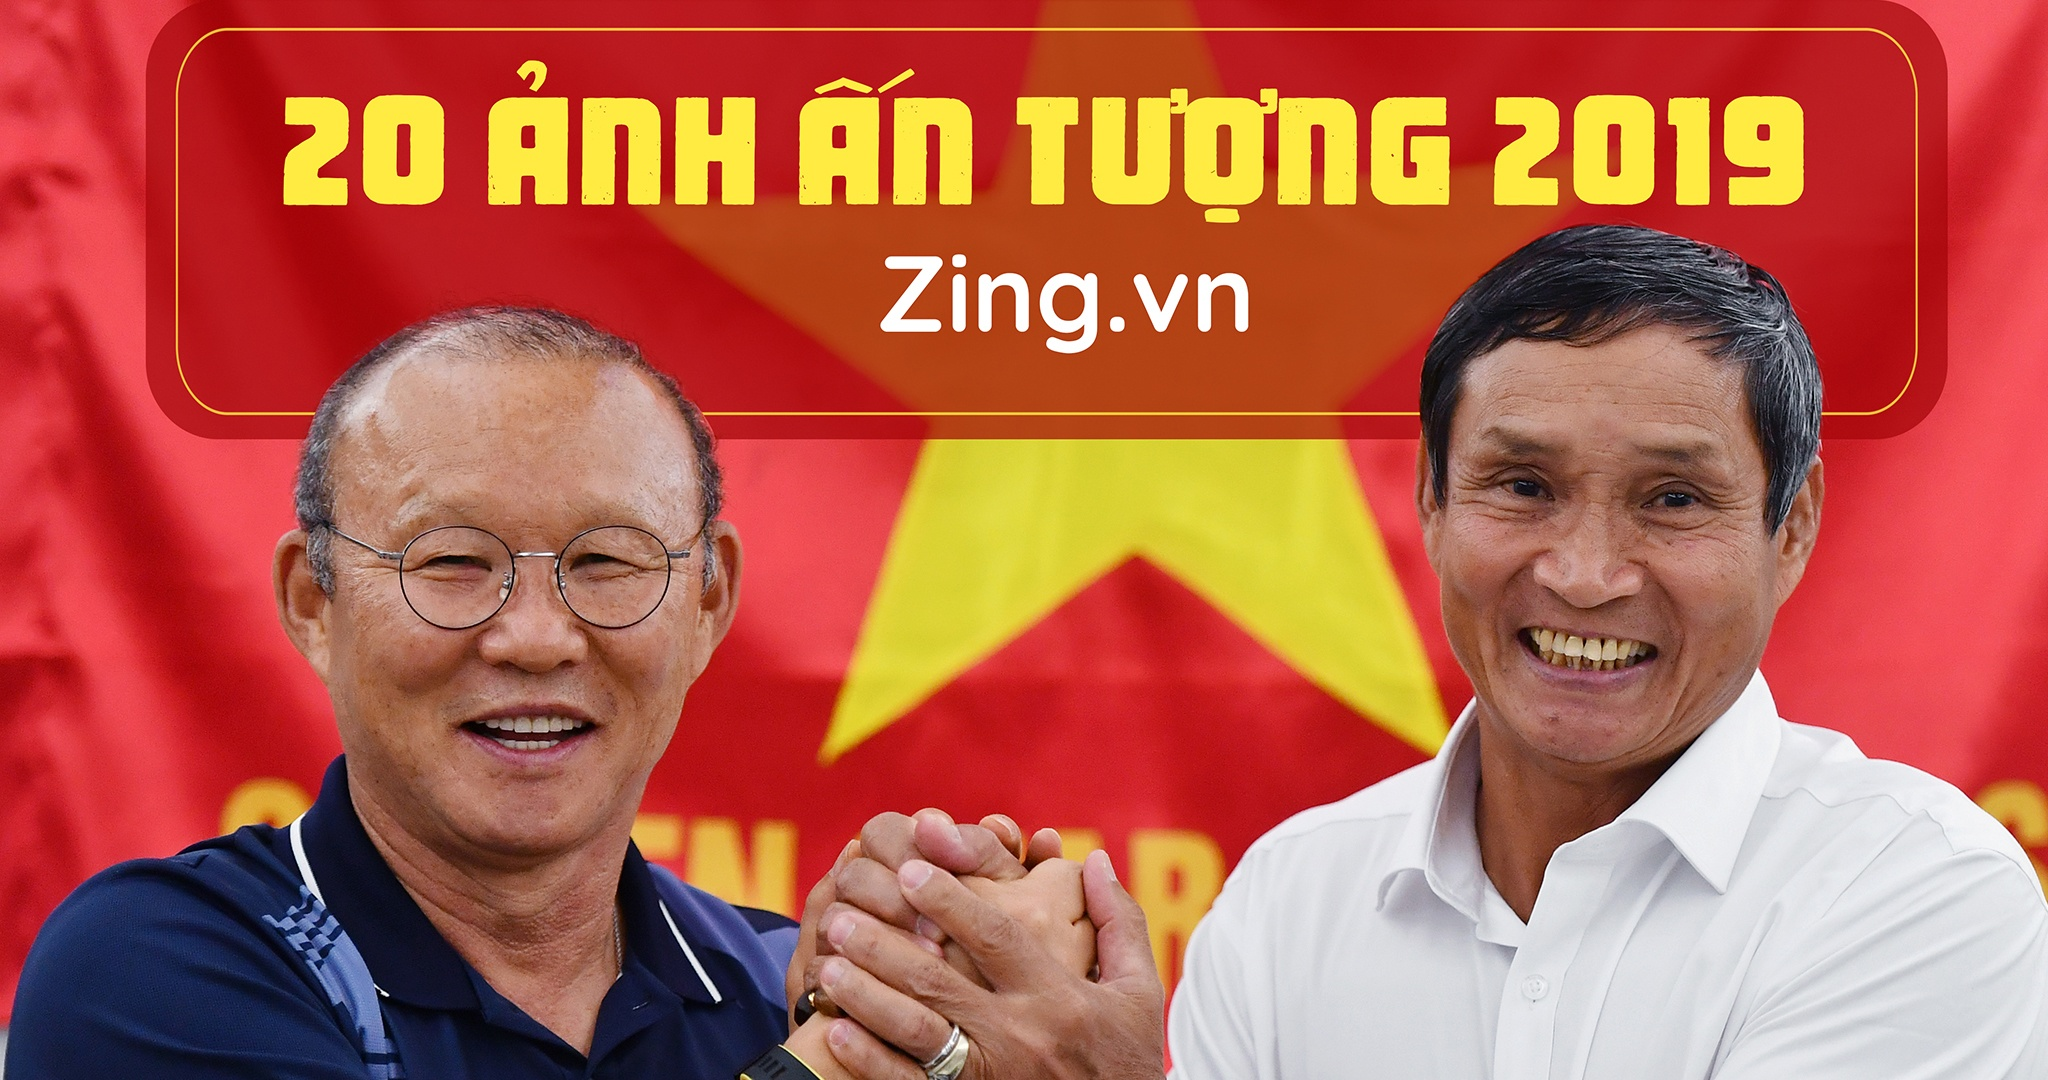 anh trong nam 2019 tren Zing.vn anh 1